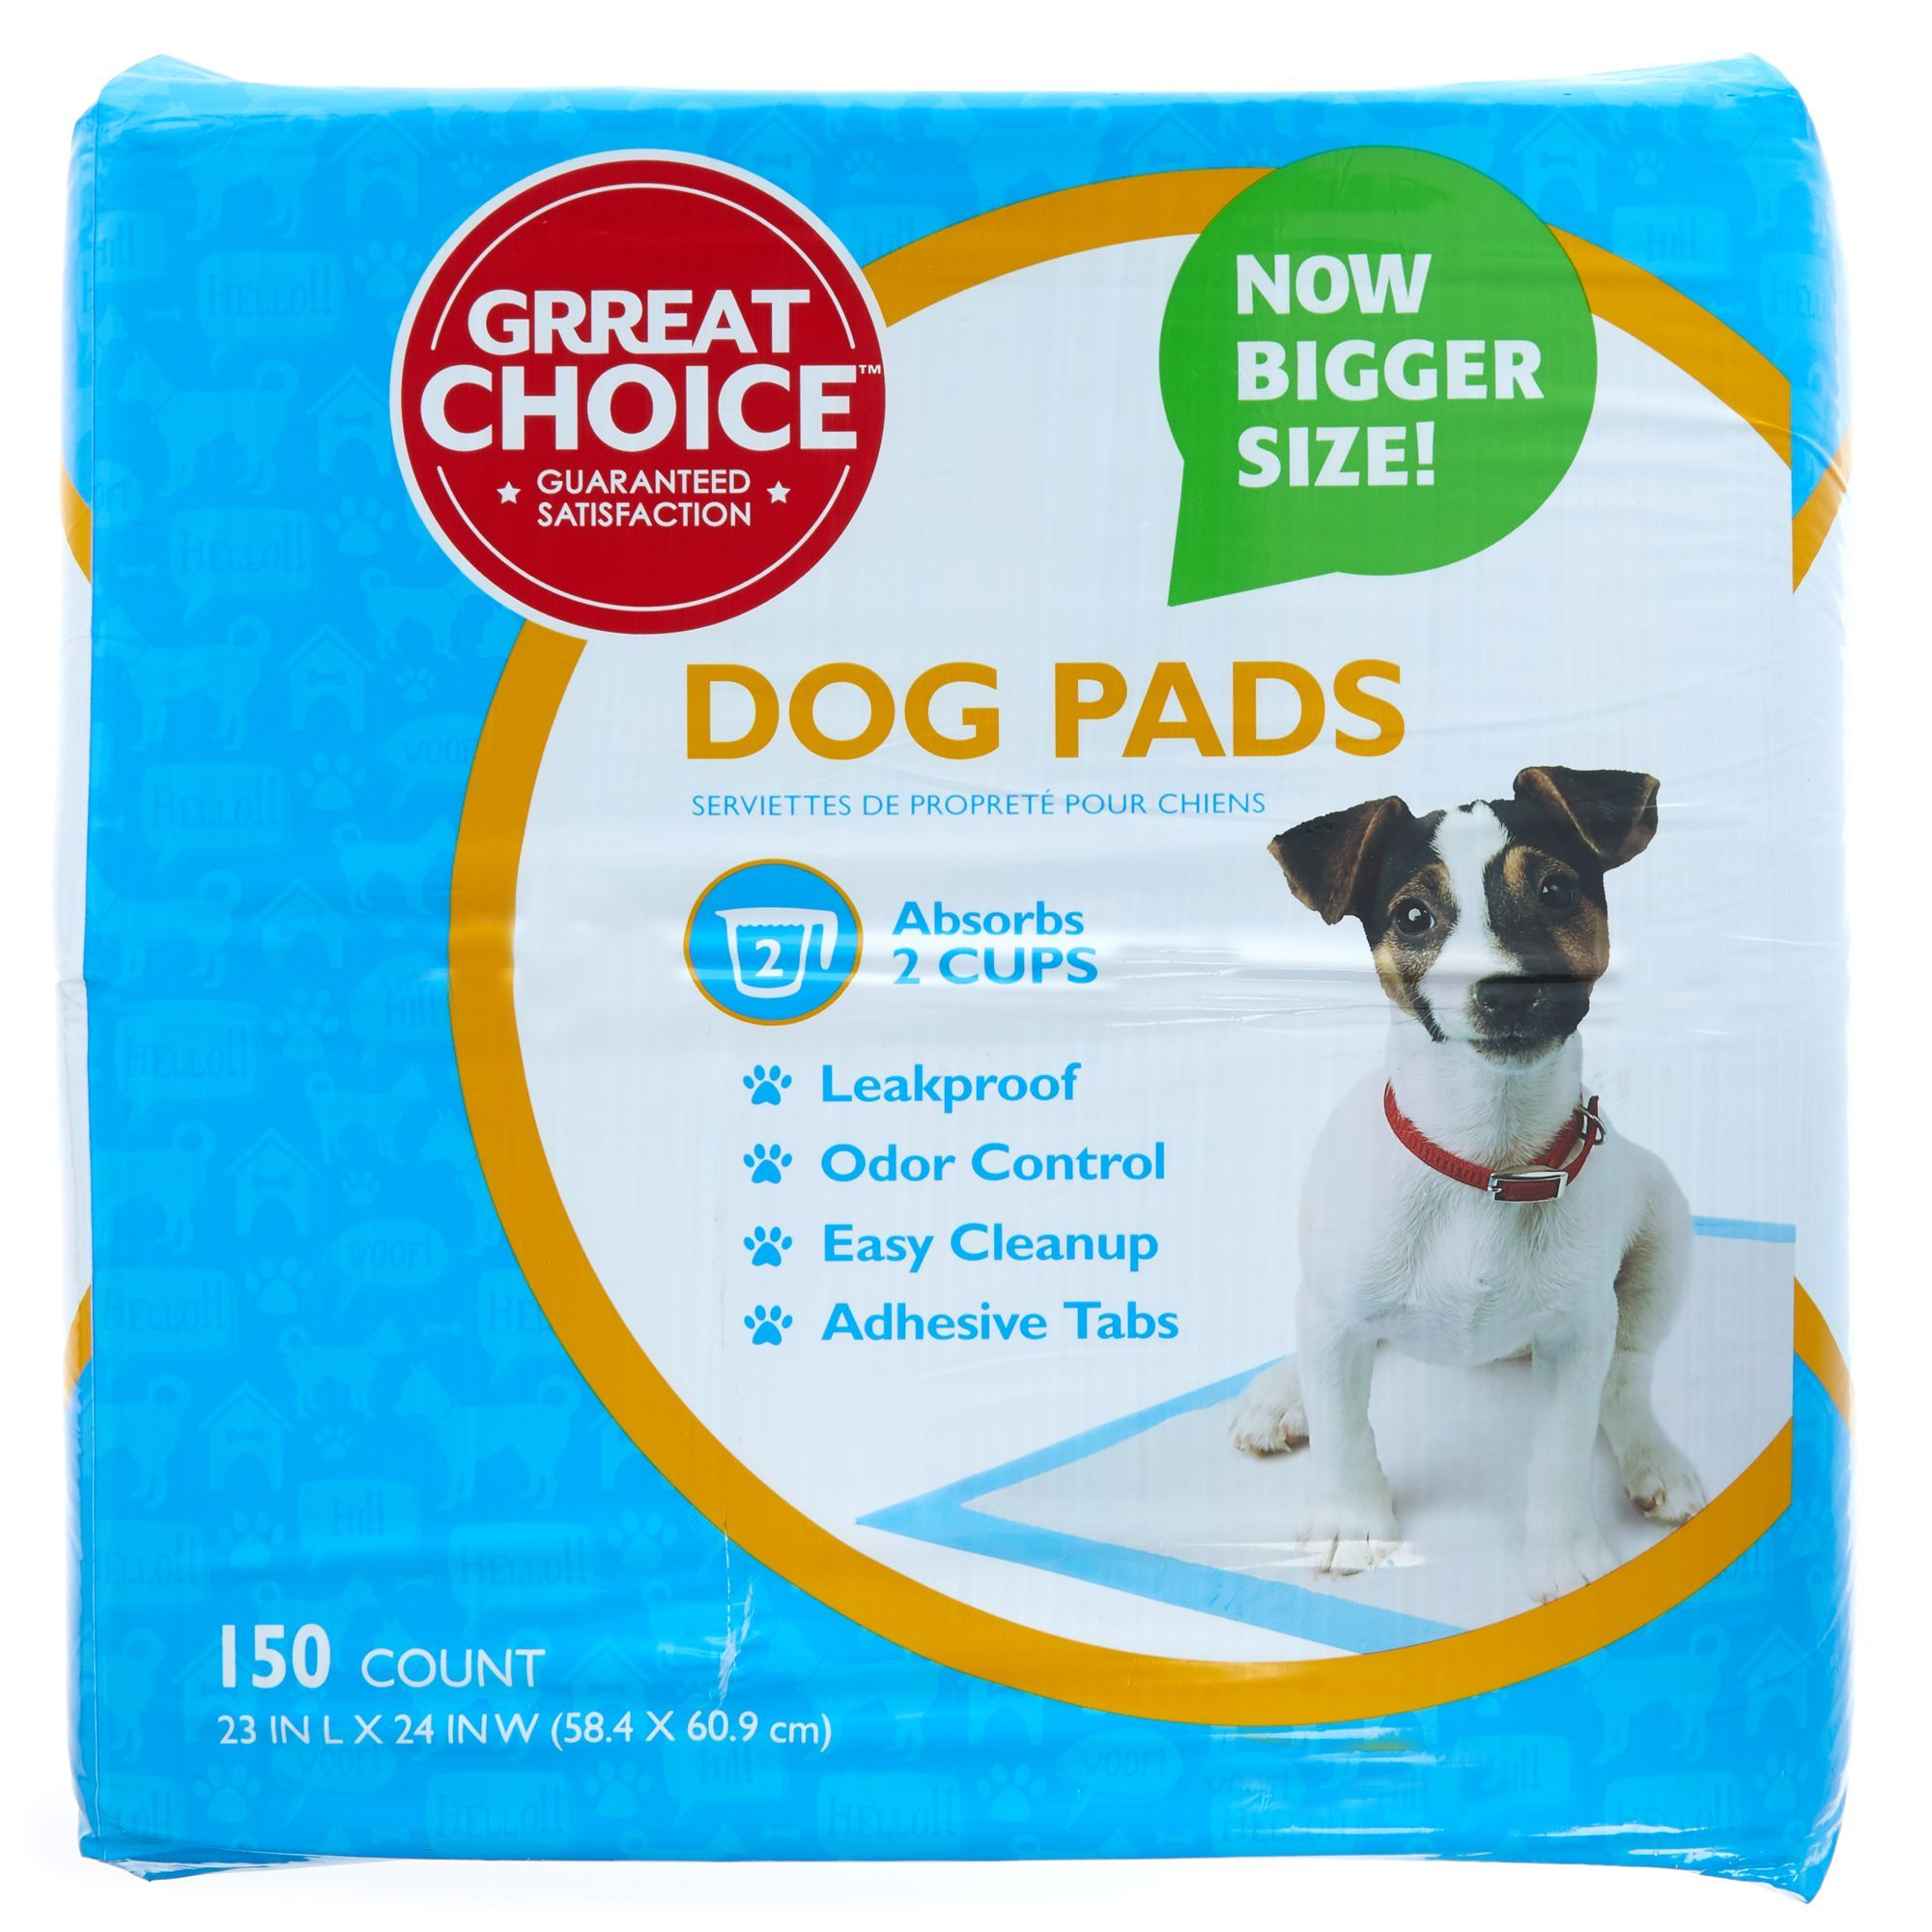 Grreat Choice Dog Pads Size 150 Count Great Choice Blue White